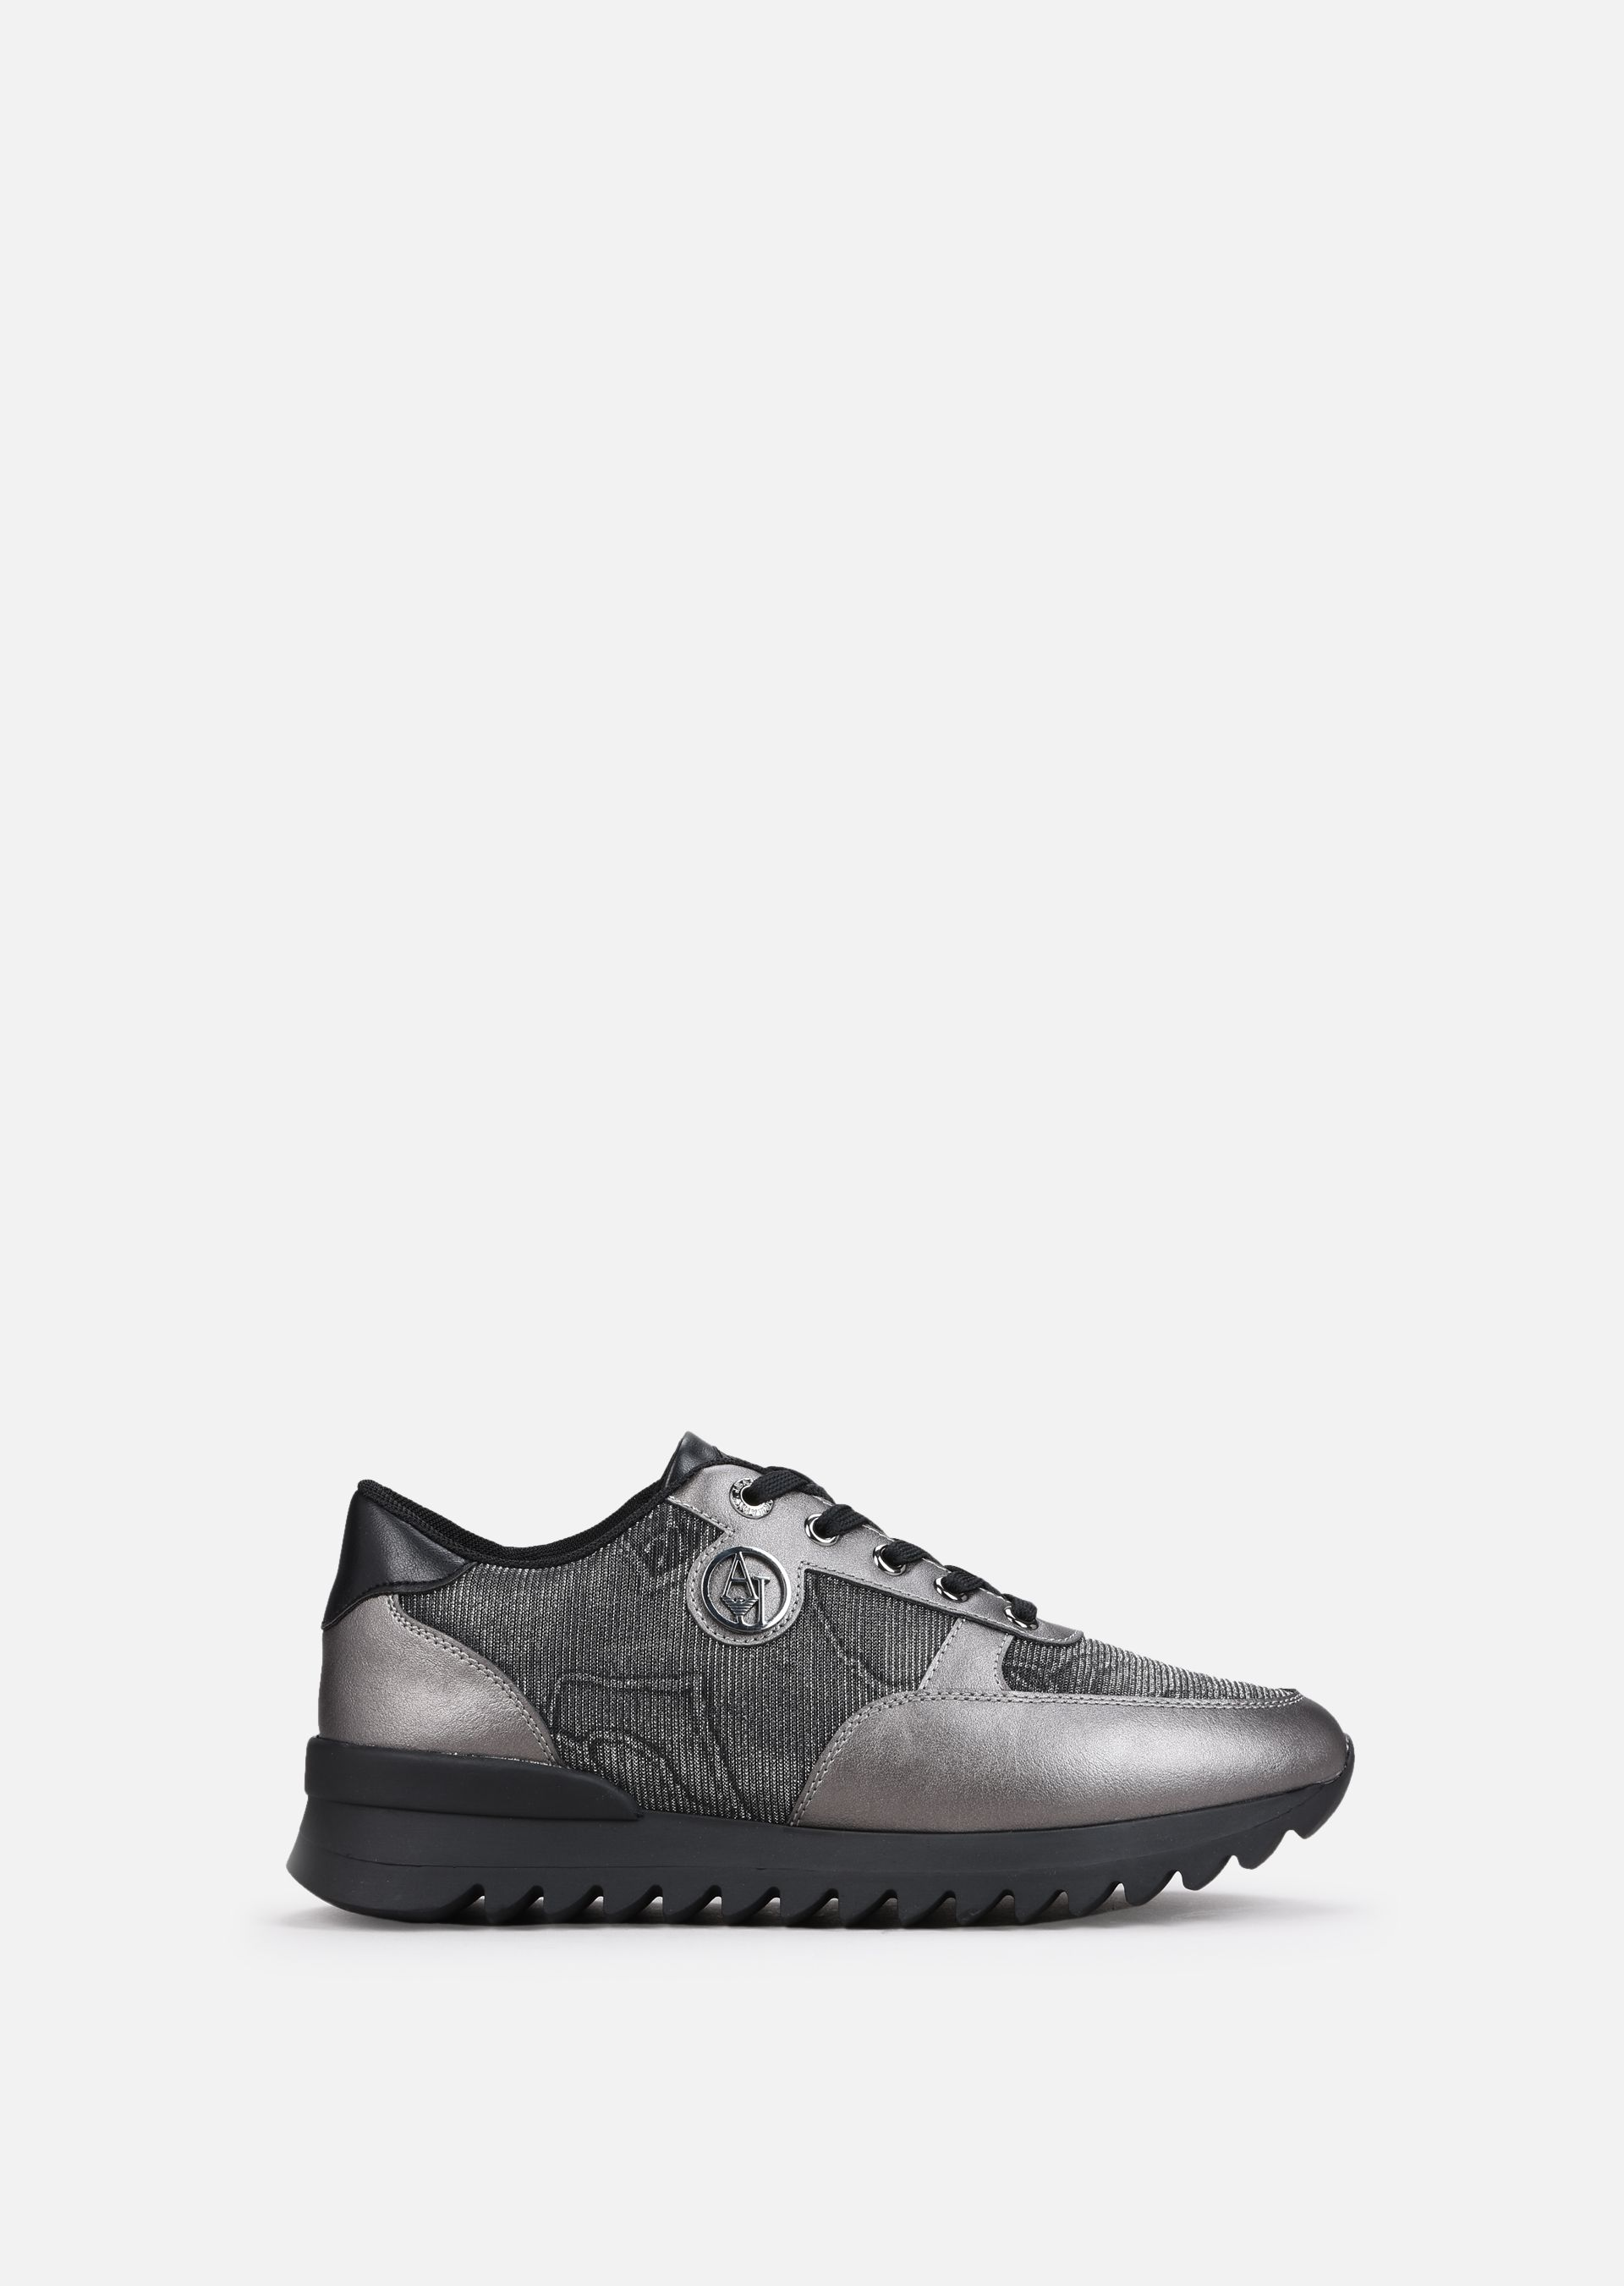 Sneakers With Marble Effects For Women Emporio Armani